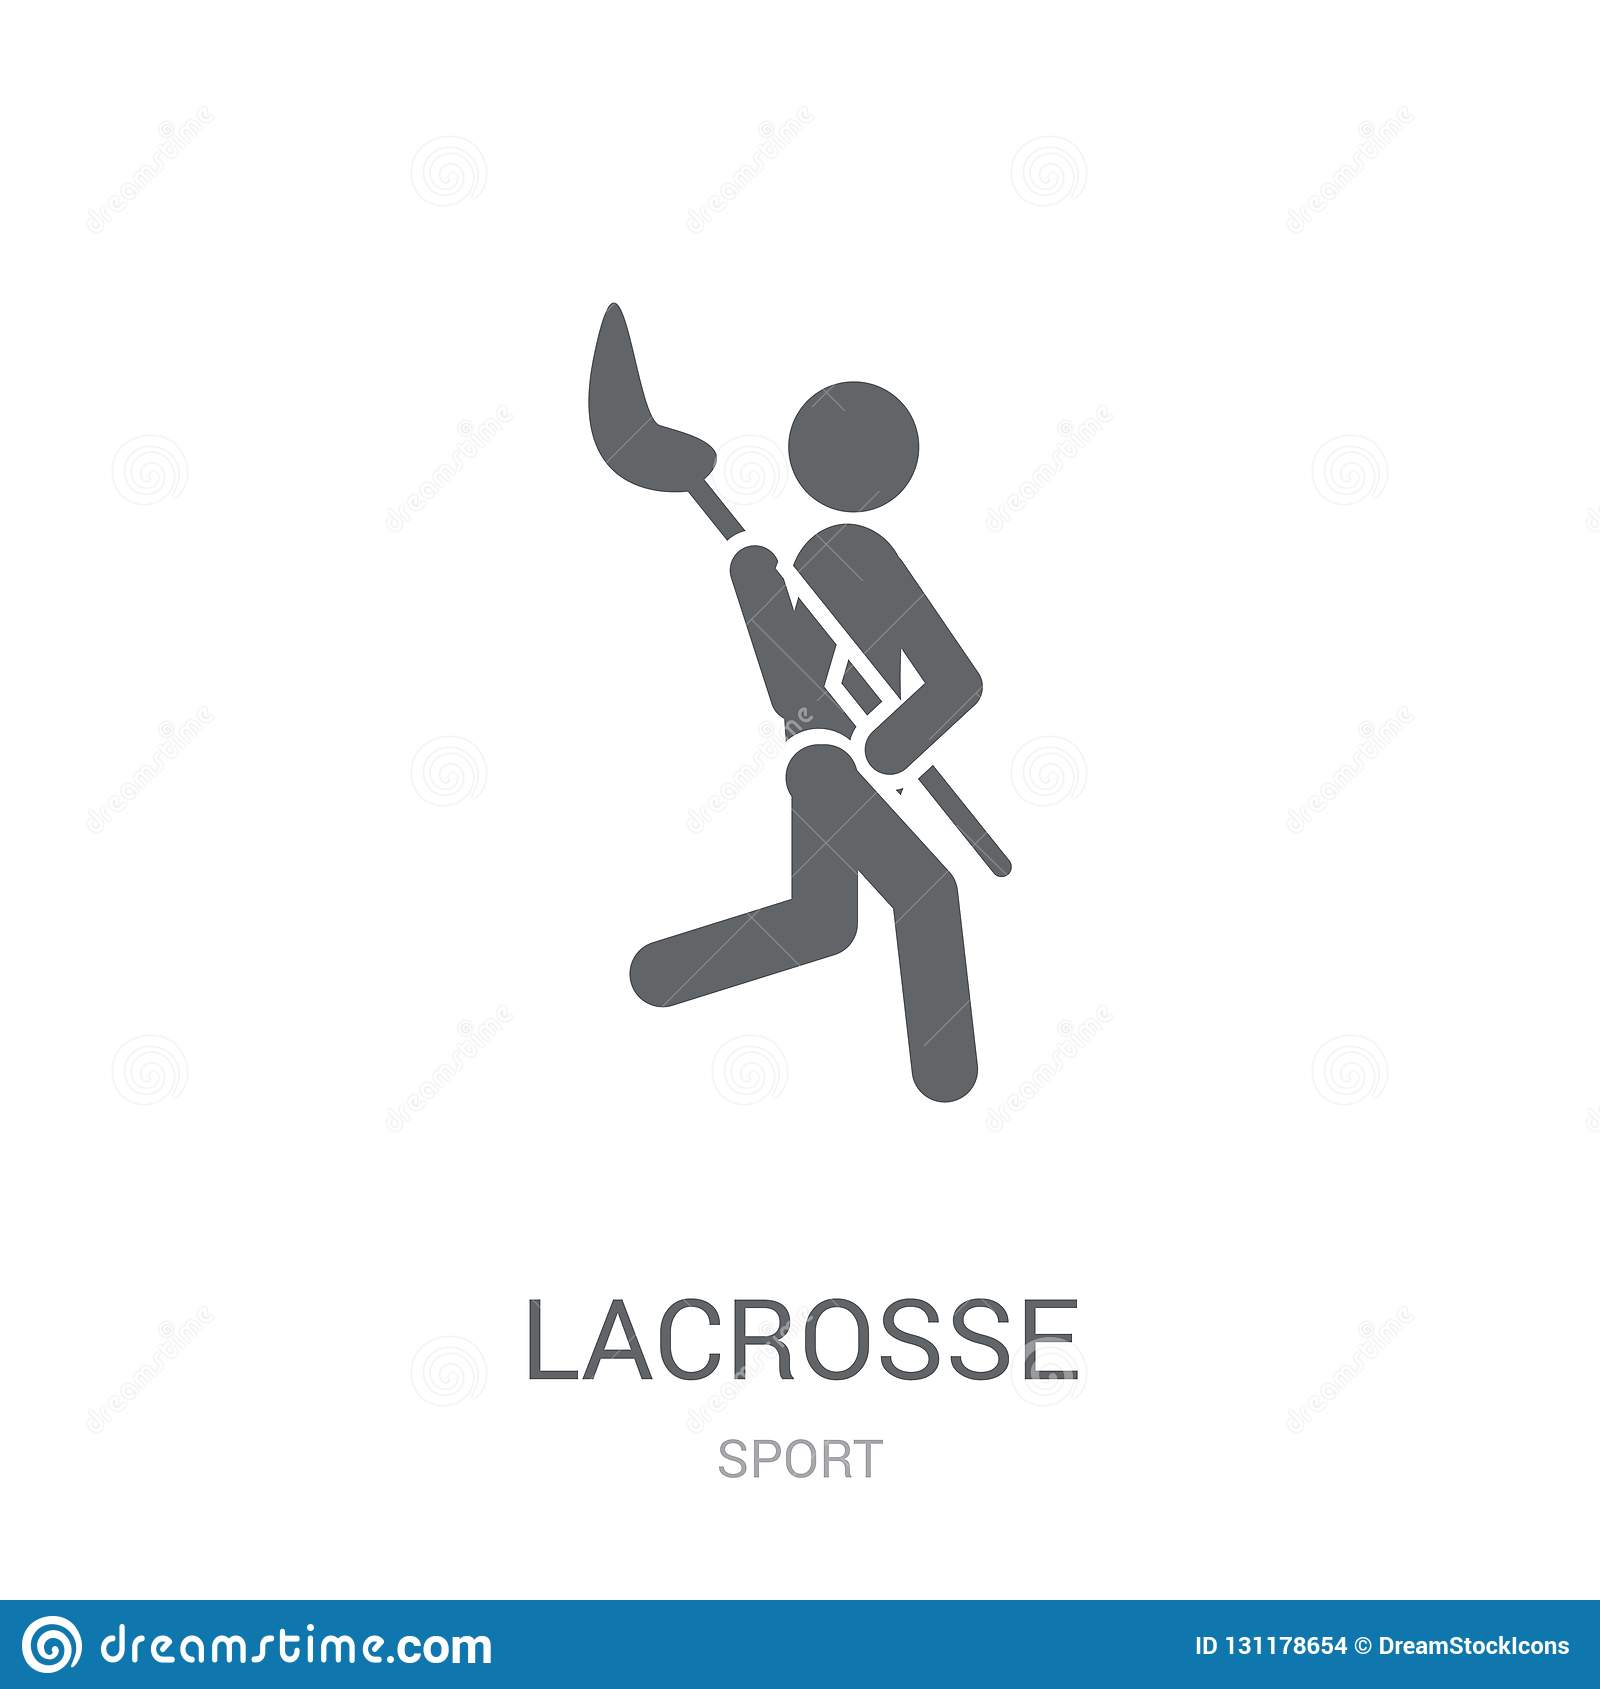 Lacrosse icon. Trendy Lacrosse logo concept on white background